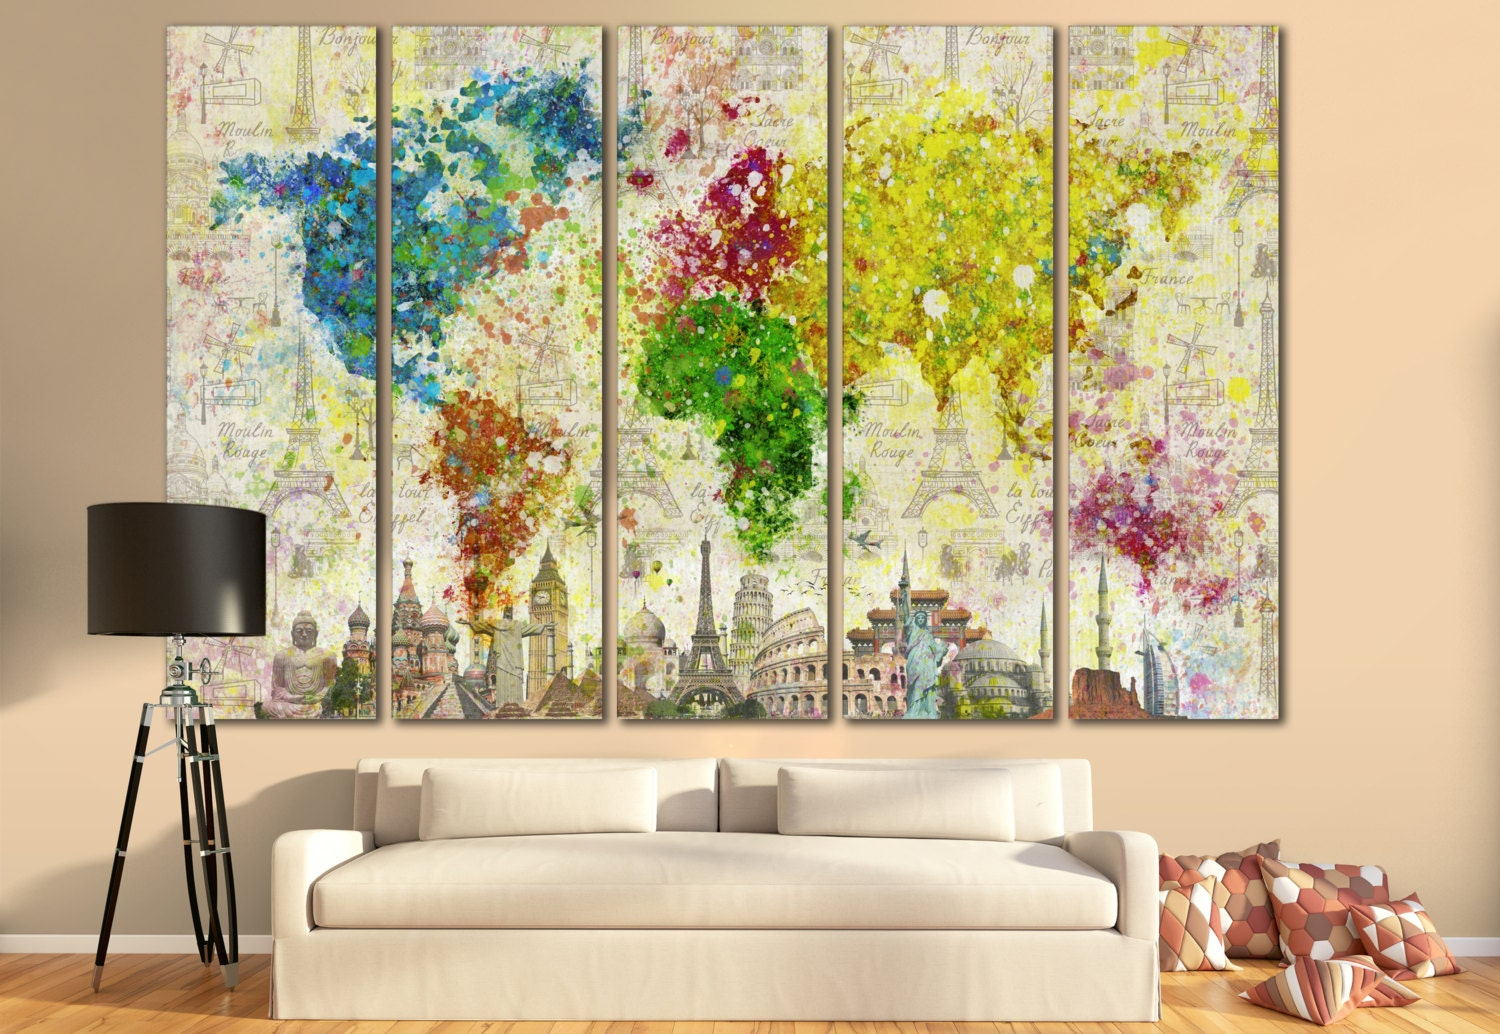 Living Room Art. Stunning Living Room Design Wall Art Rize Studios ...